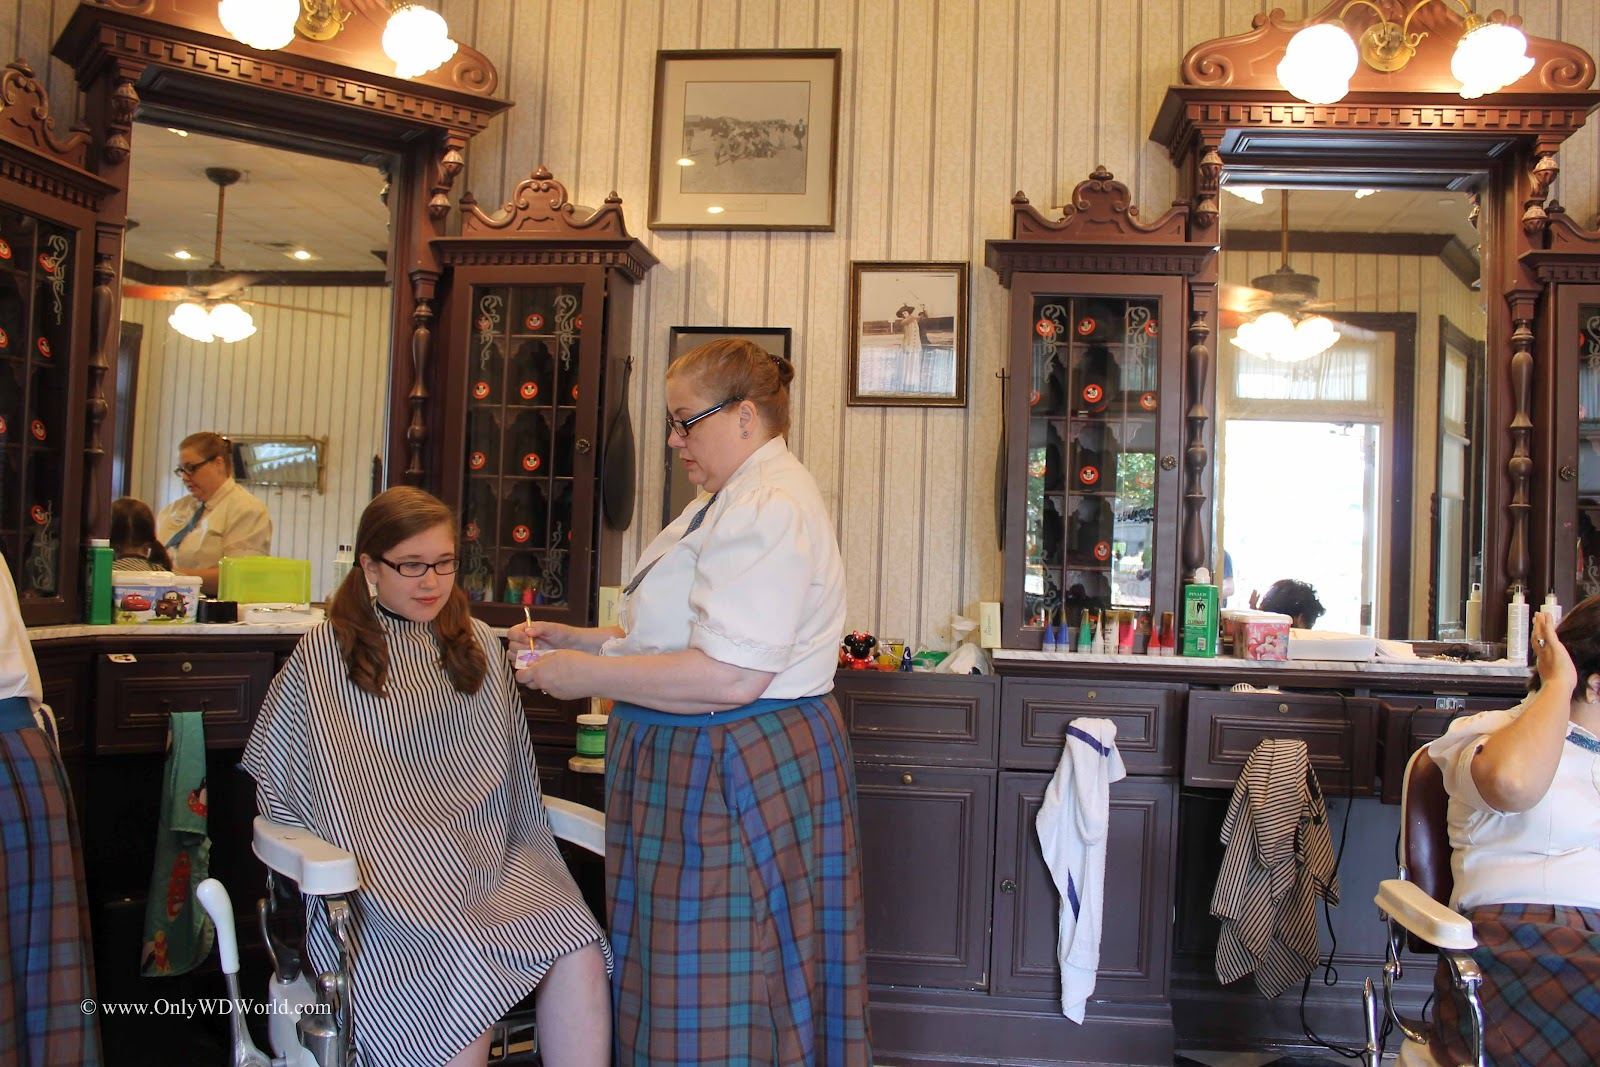 Top Disney World Deal At The Harmony Barber Shop Disney World Blog ...